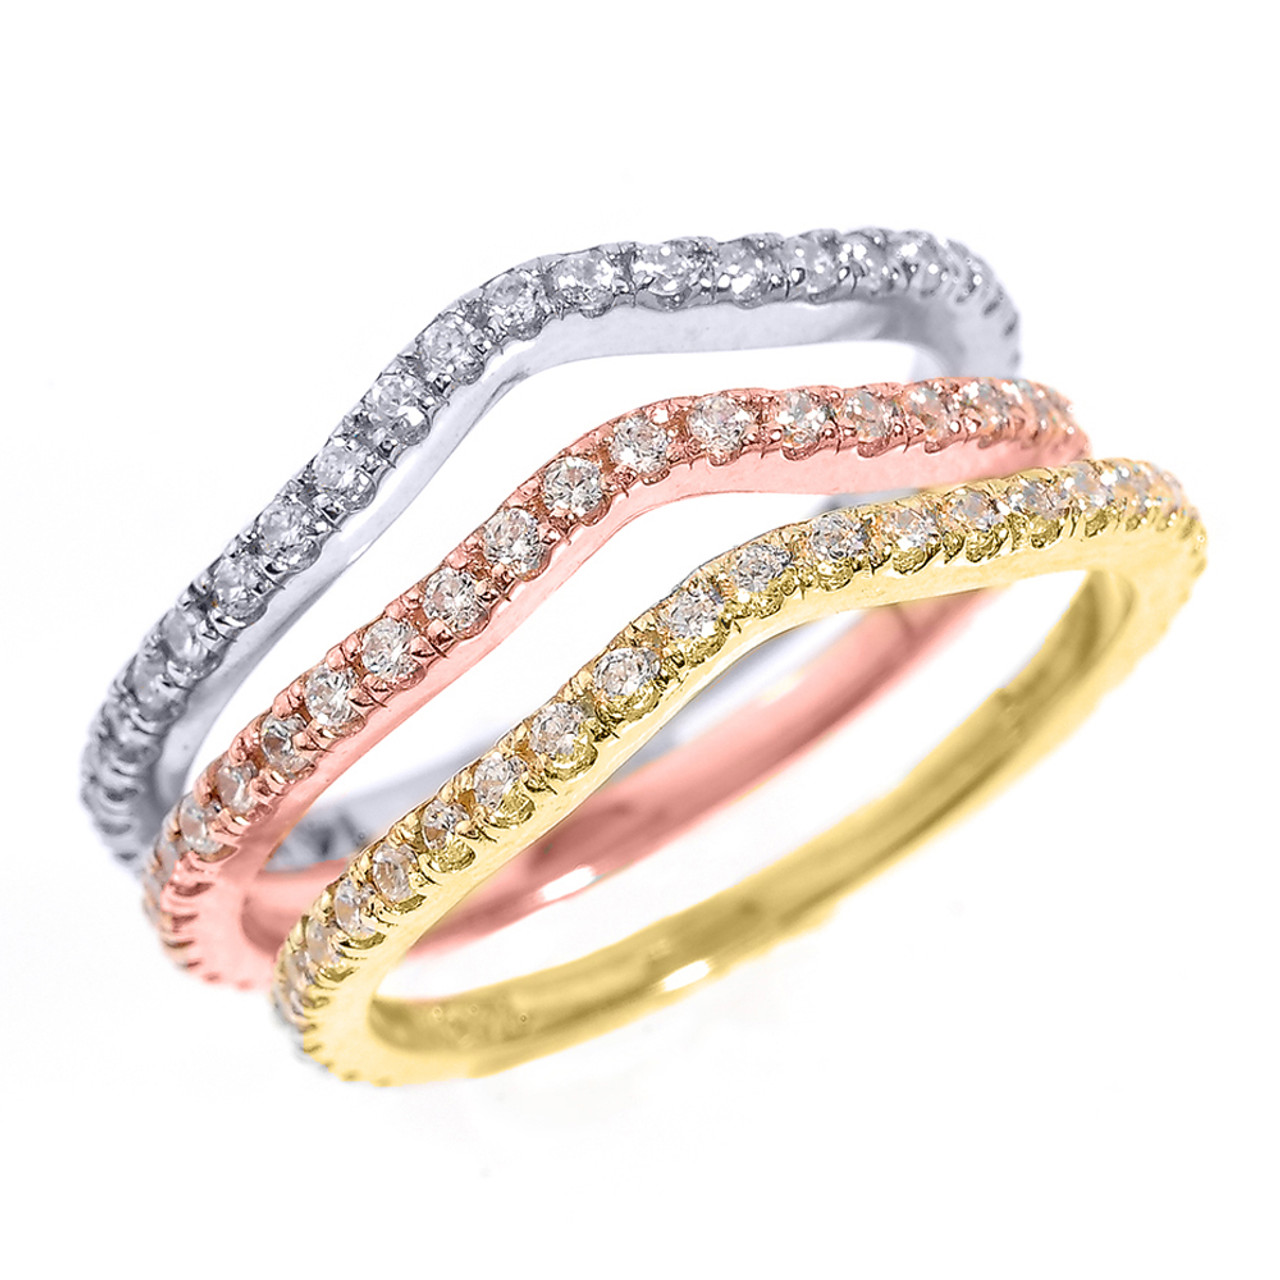 14k tri color gold chevron diamond stackable 3 piece wedding ring set - 3 Piece Wedding Rings